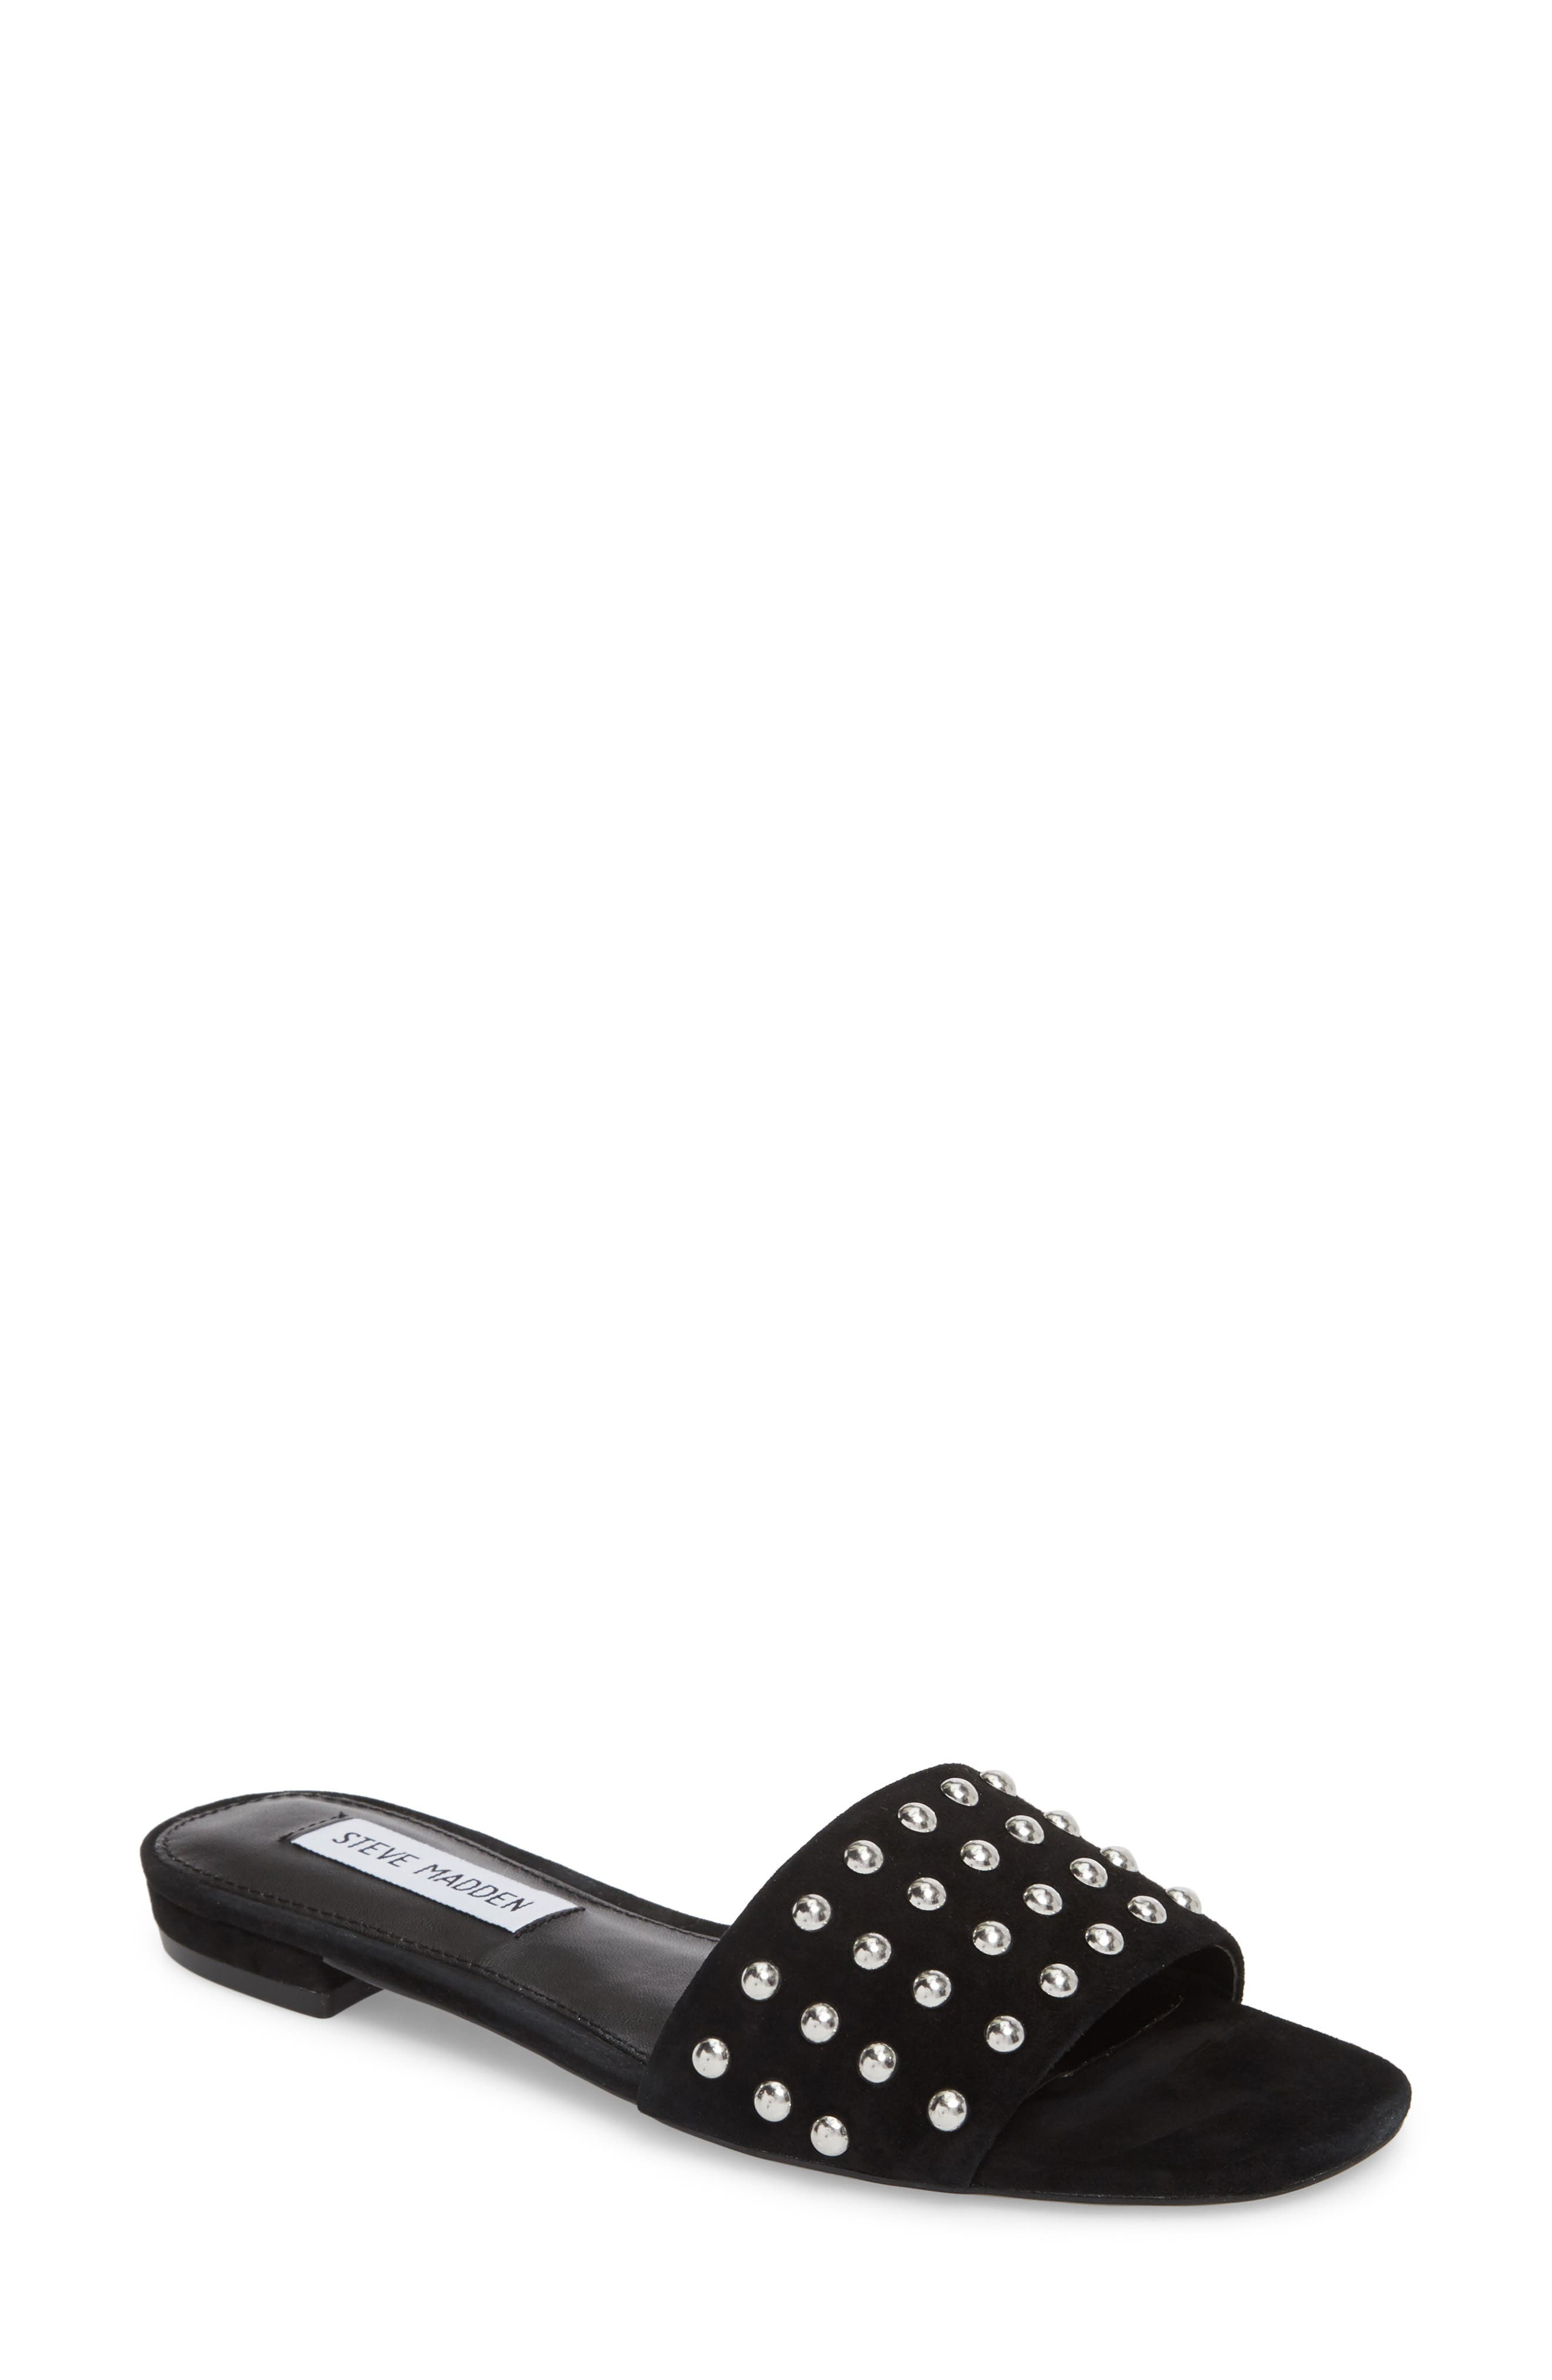 Viv Studded Slide Sandal,                             Main thumbnail 1, color,                             006